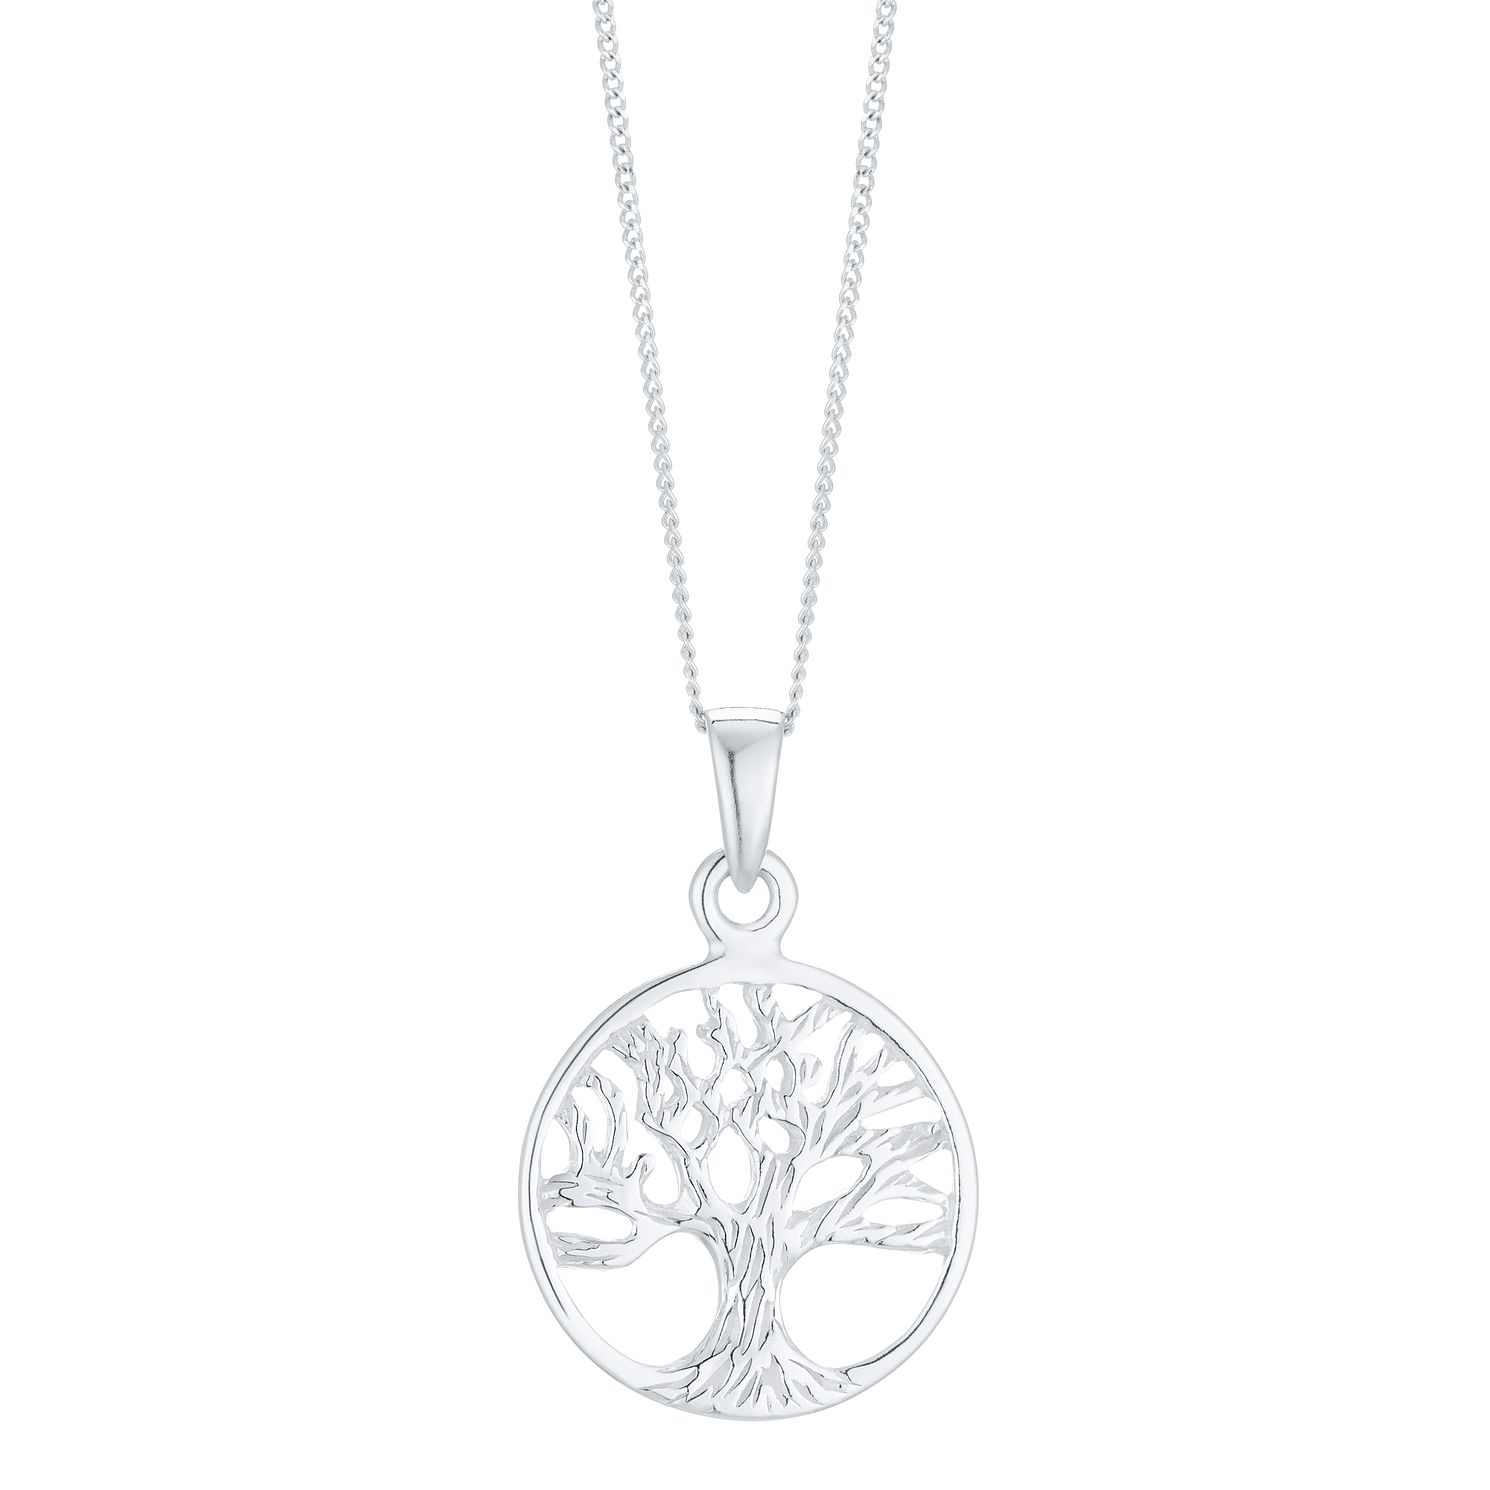 necklace moonstone il moon life rainbow full of jewelry zoom tree listing celestial fullxfull